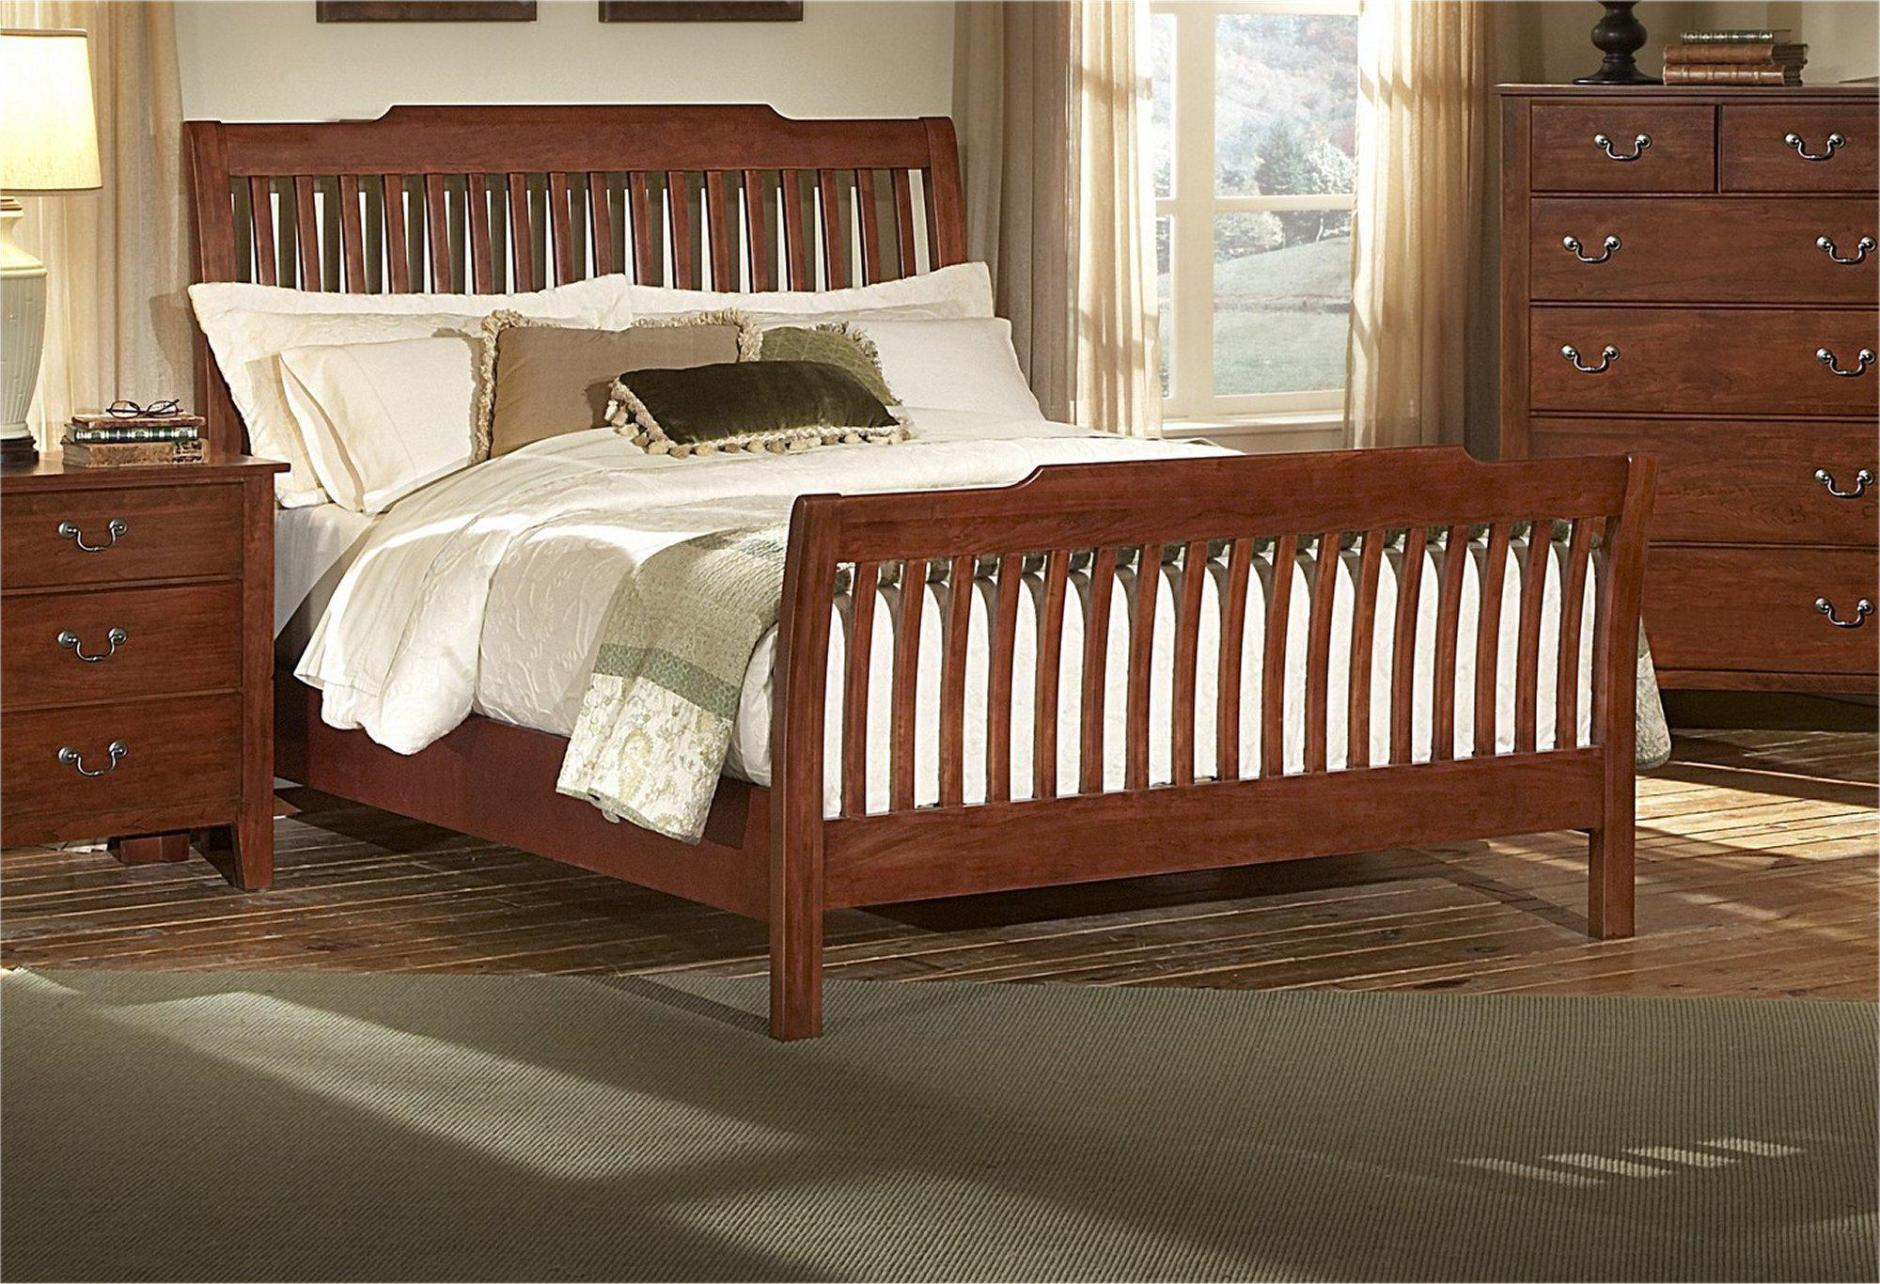 Image of: Queen Sleigh Bed Frame